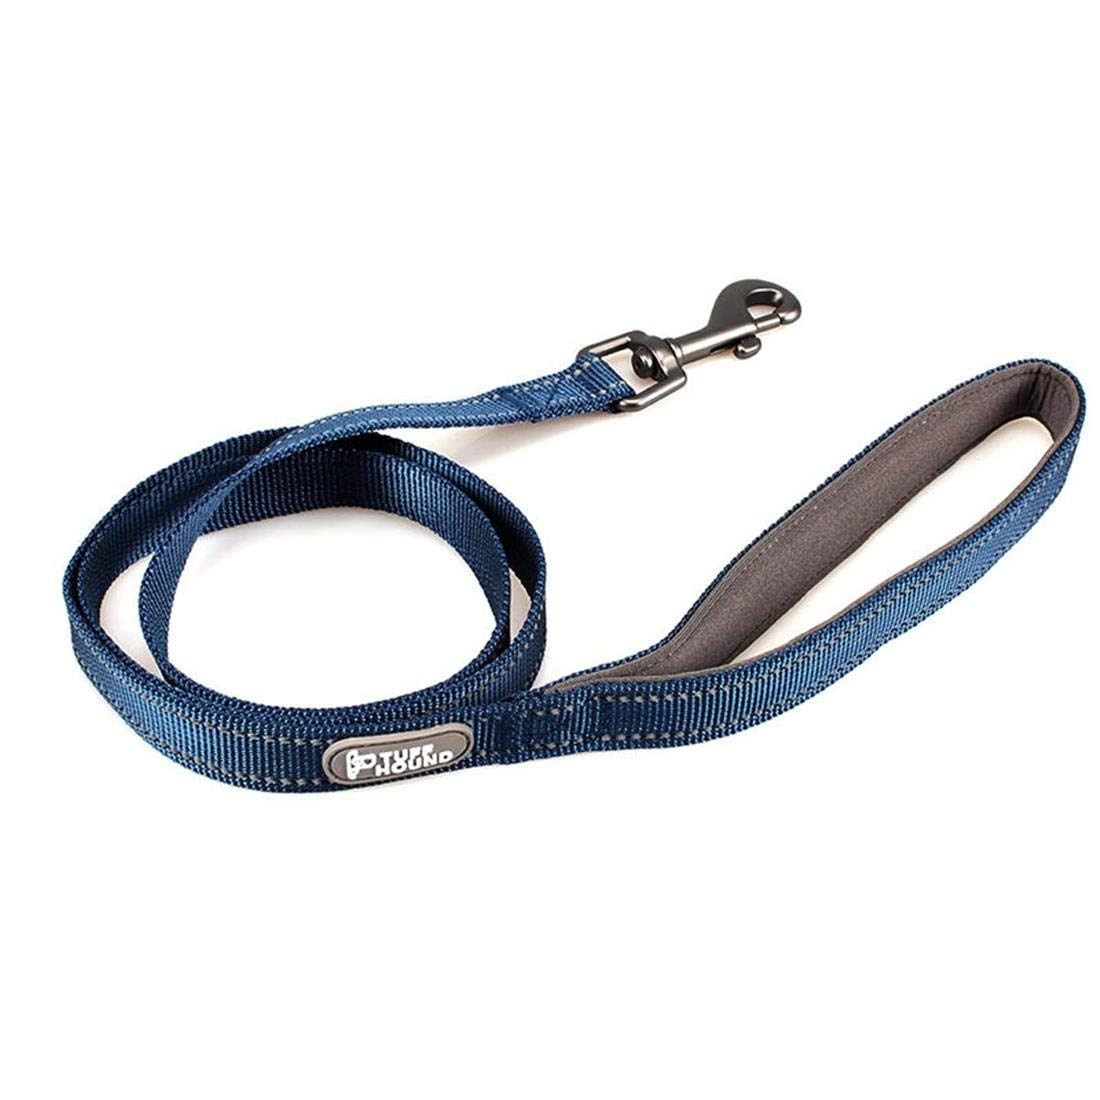 bluee M bluee M AUSWIEI Dog Leash Nylon Reflective Hand Guard Dog Chain Bolt Dog Rope Pet Supplies (color   bluee, Size   M)